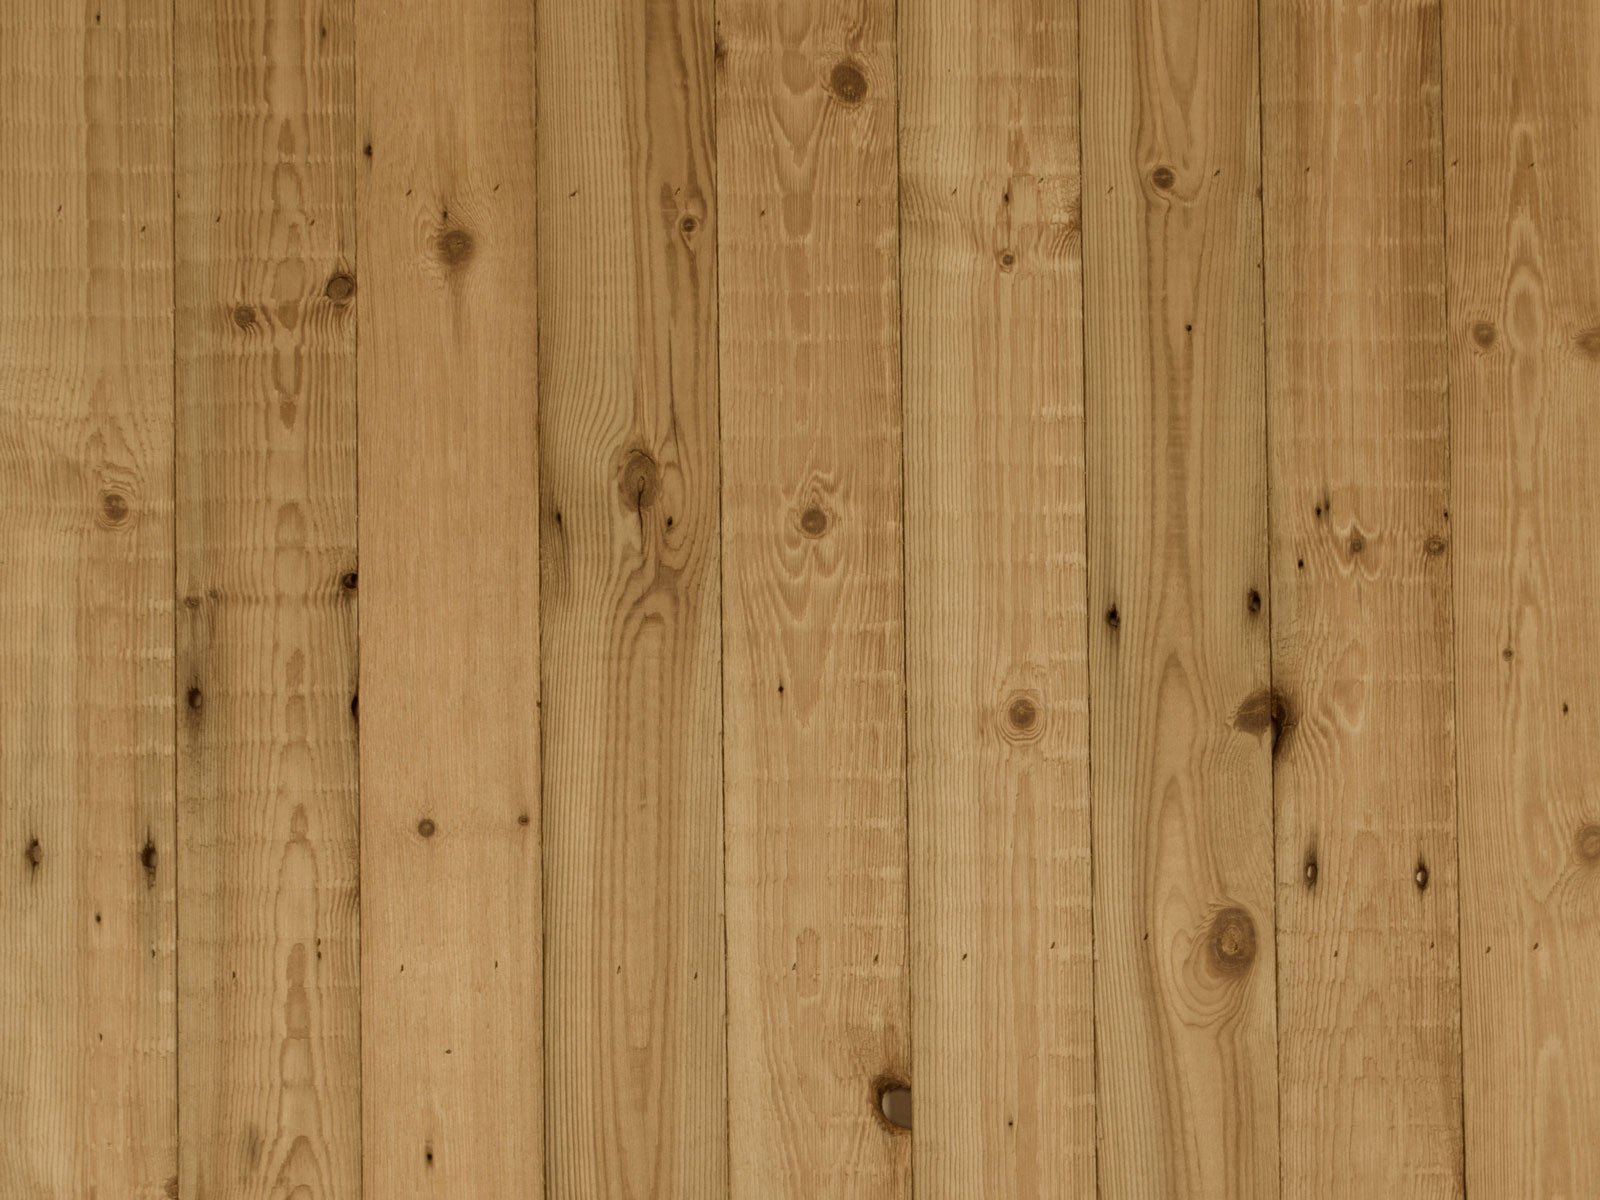 Reclaimed raw pine cladding sample board